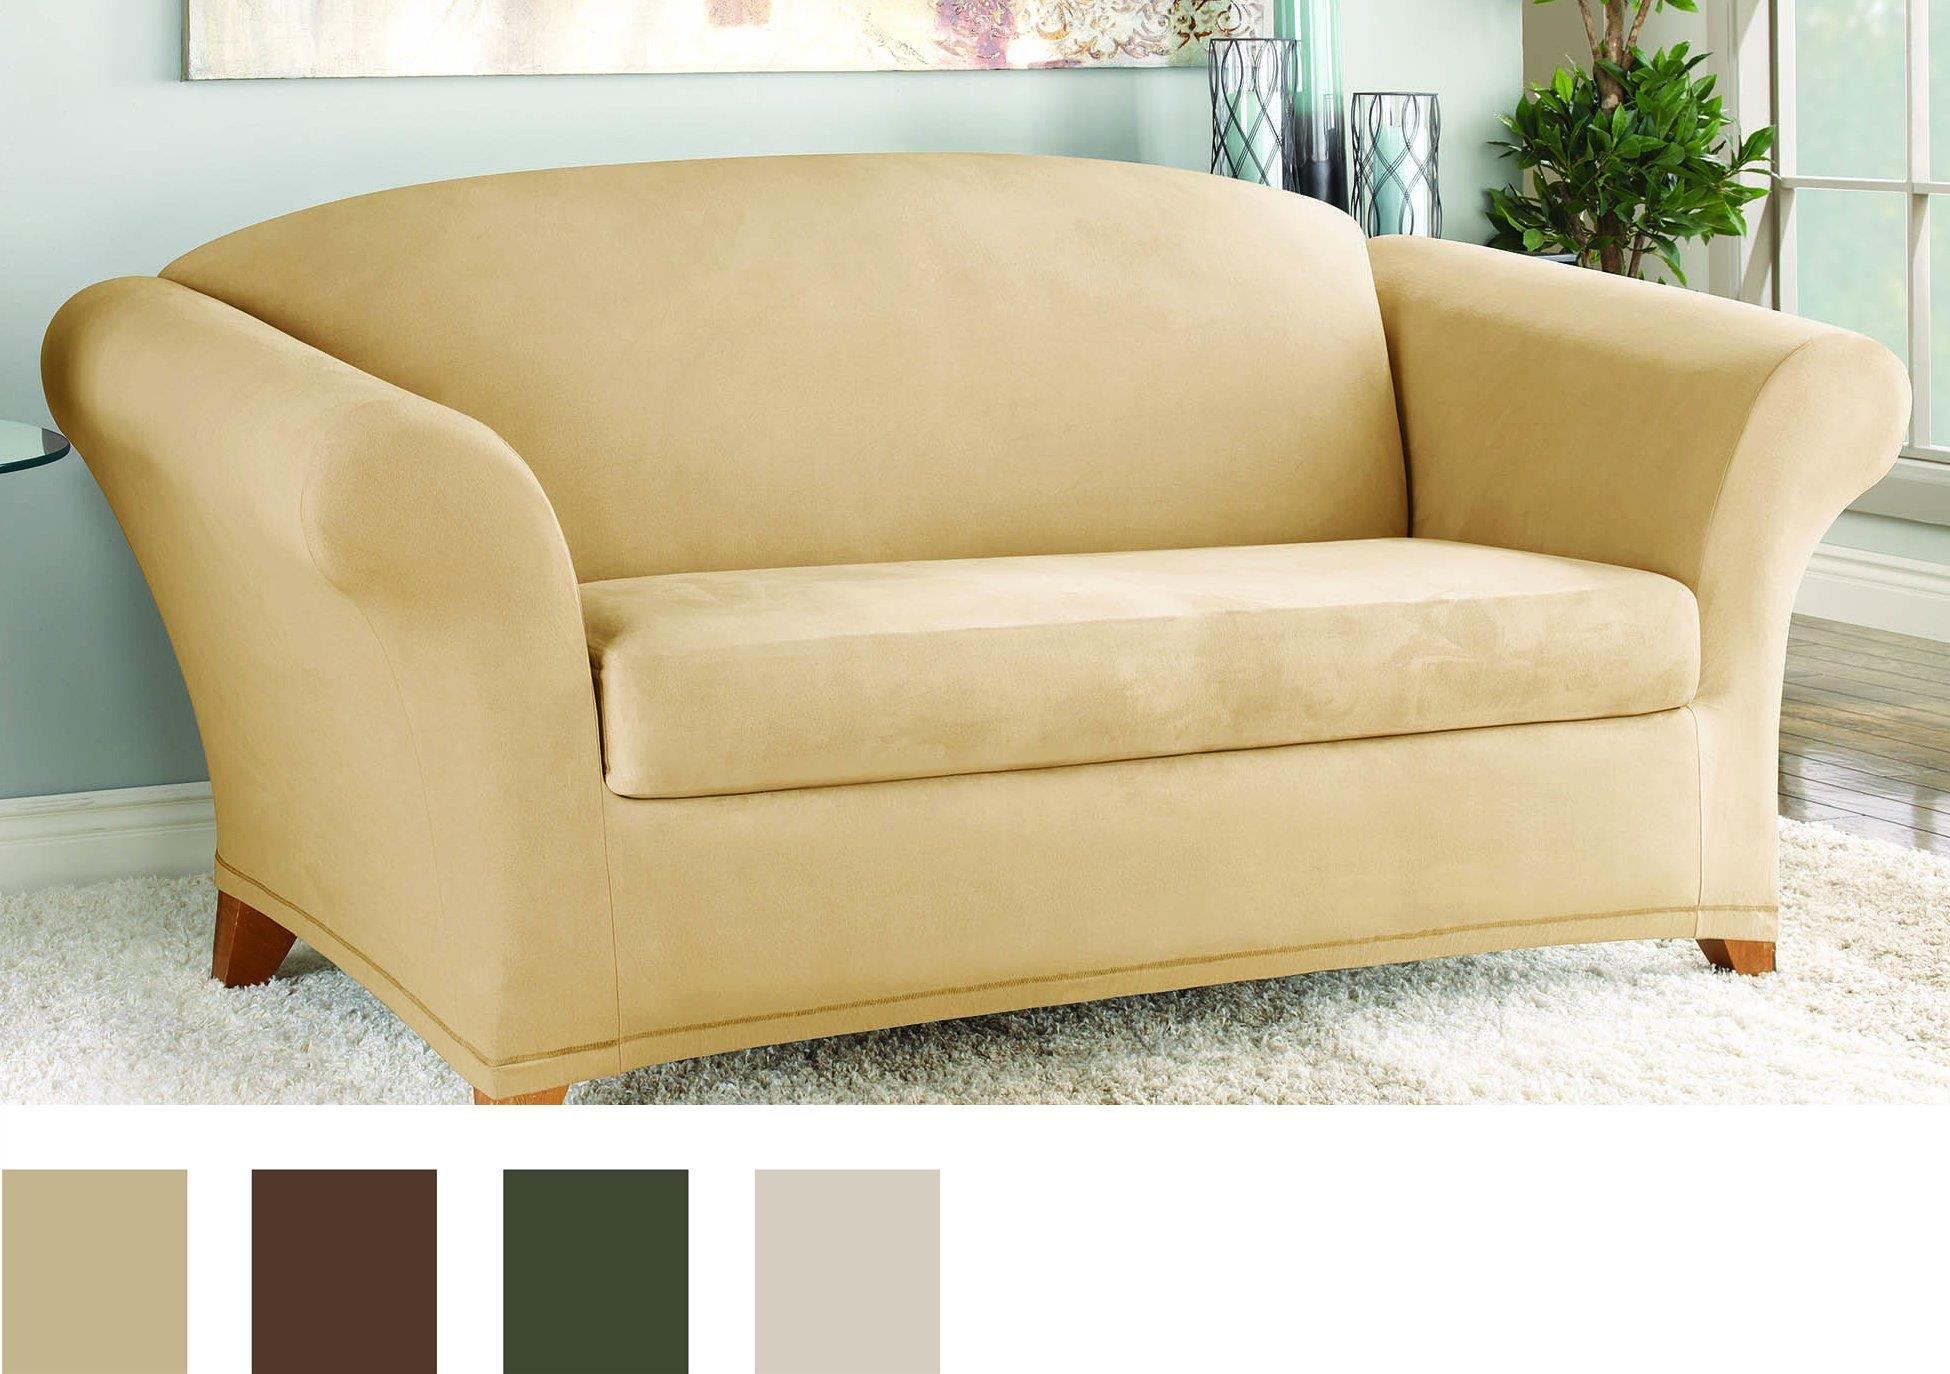 Sure Fit Stretch Suede - Loveseat Slipcover  - Camel (SF36448) by Surefit (Image #2)